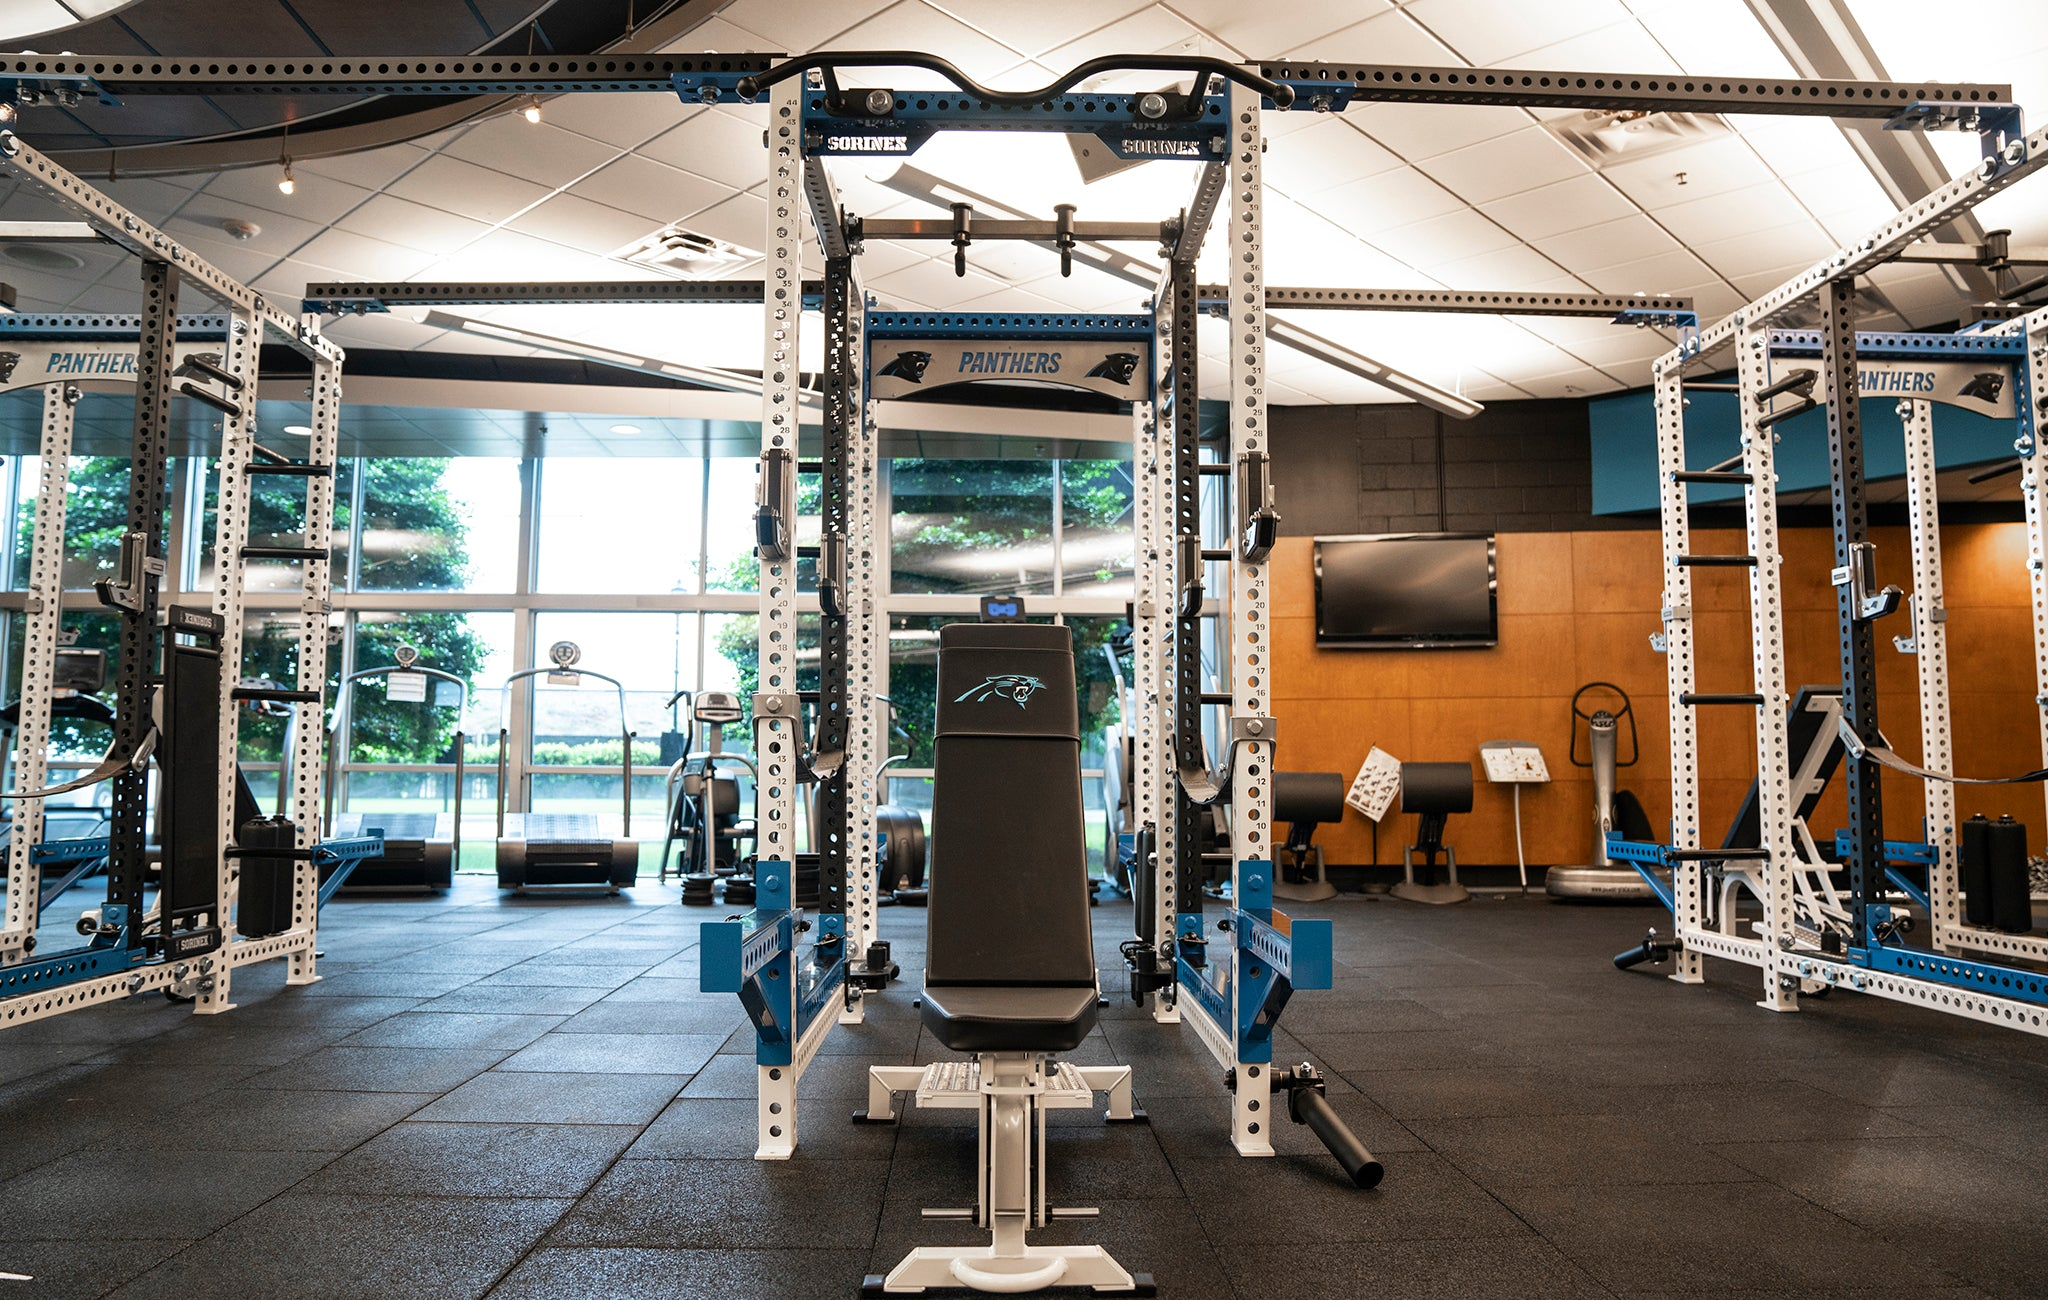 Carolina Panthers Weight Room